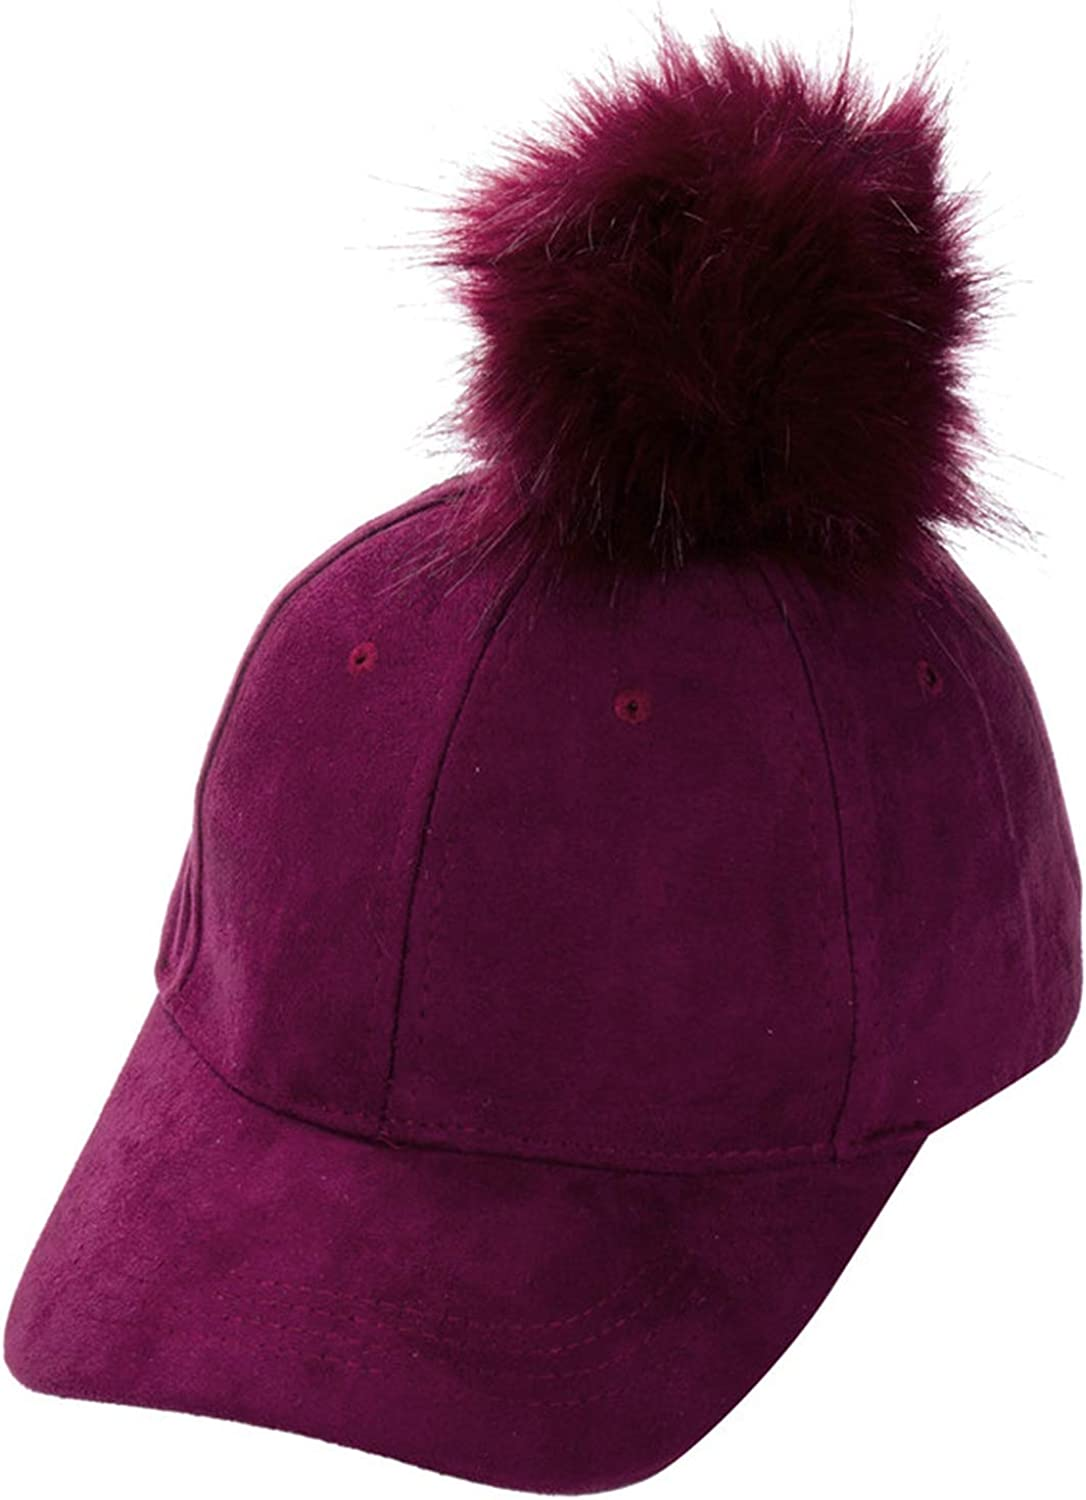 Women Faux Fox Fur Pompom Ball Suede Cap Hip Hop Hat Winter Warm Single Ball Patchwork Baseball Hat Caps